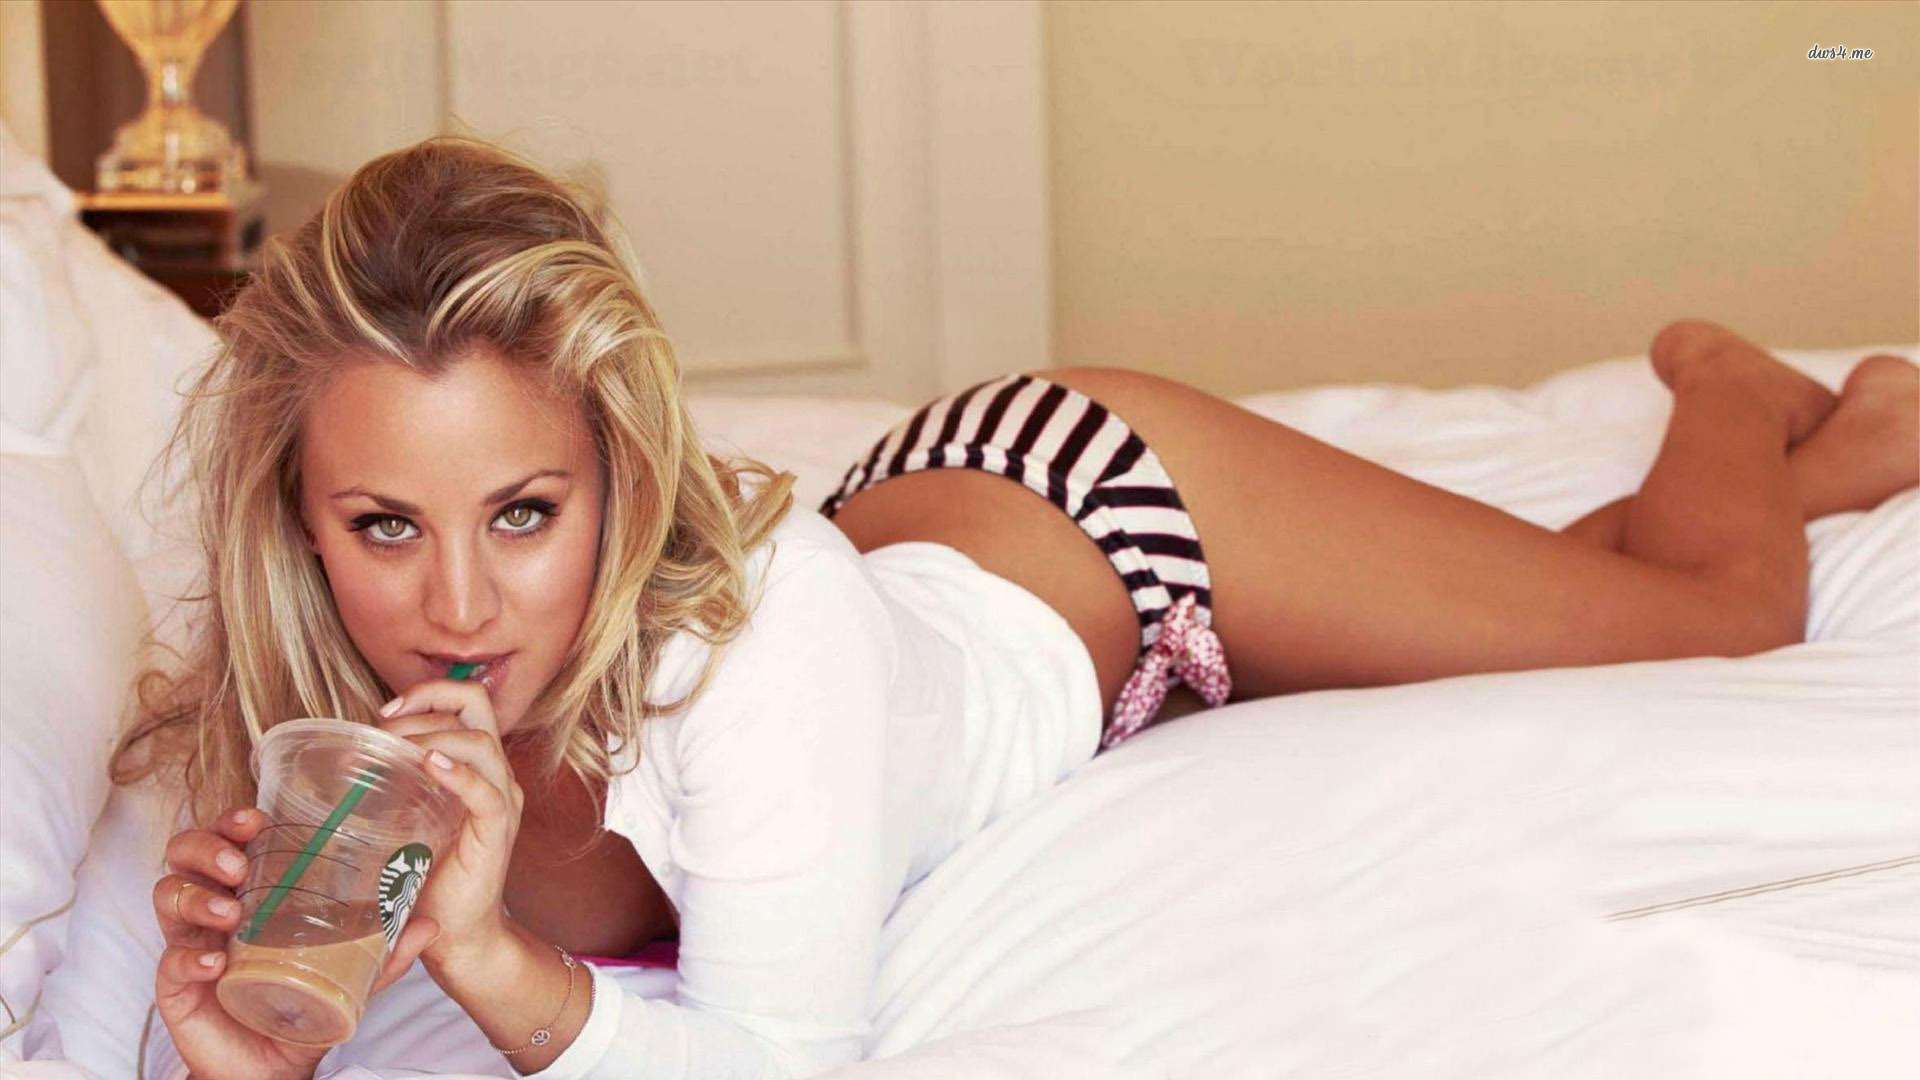 Kaley Cuoco Wallpaper 1920x1080 - WallpaperSafari